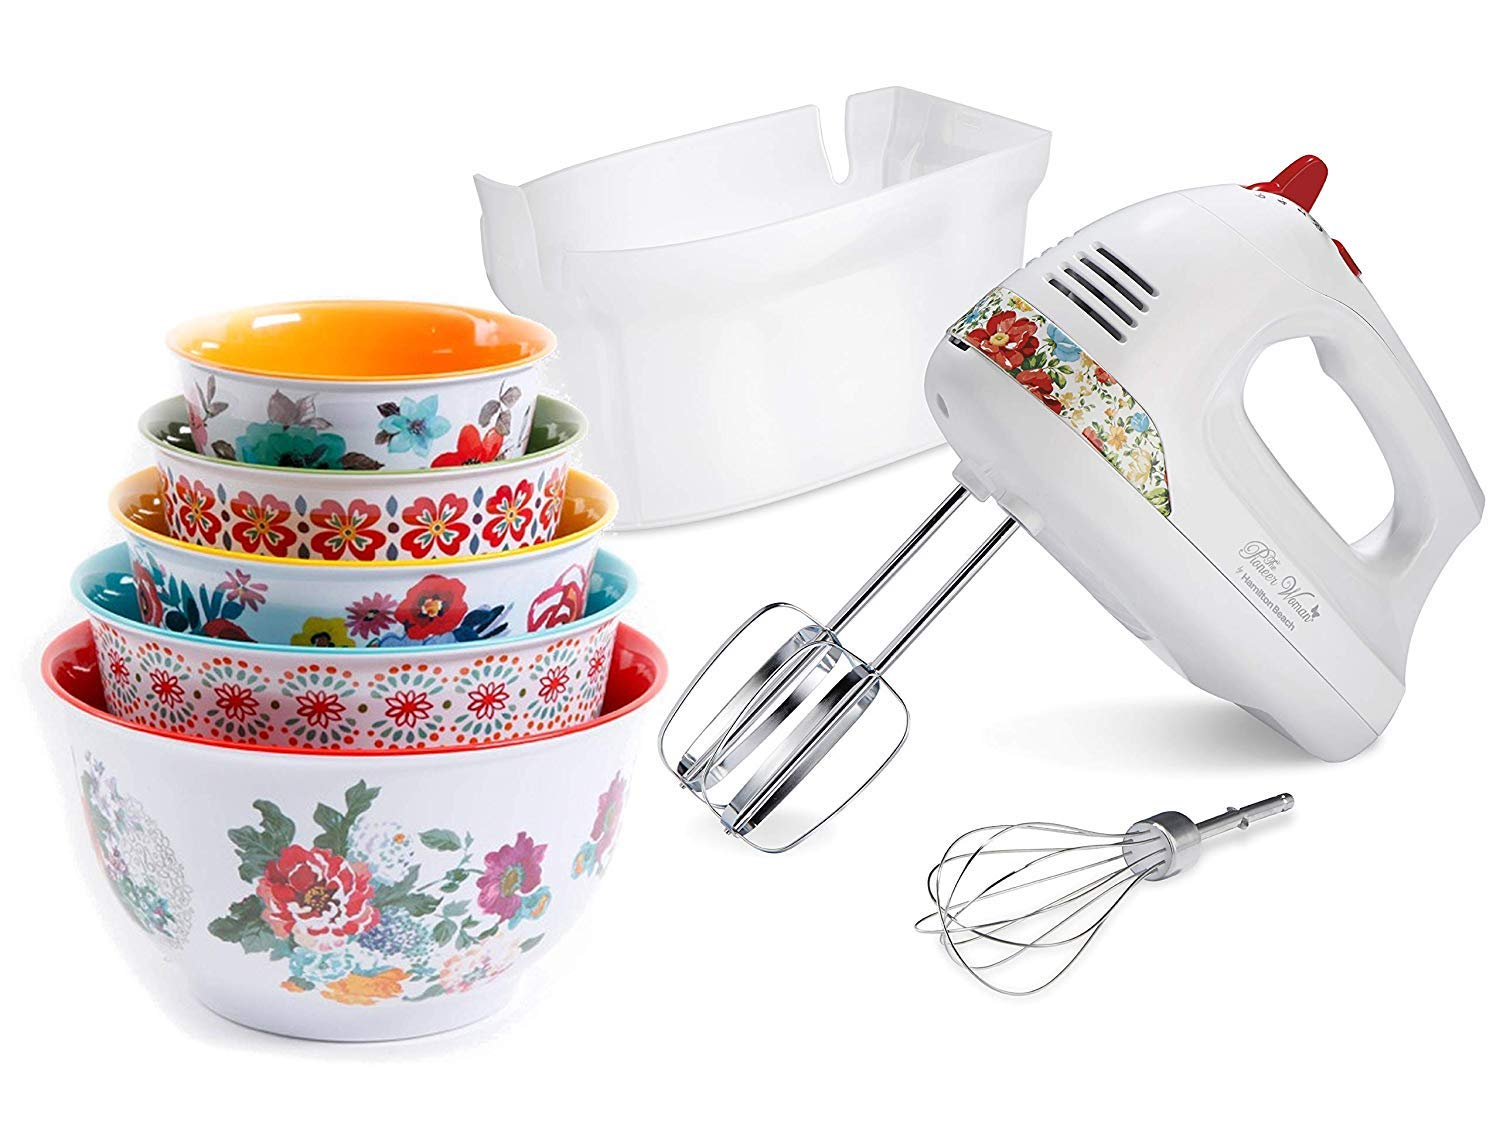 The Pioneer Woman Hand Mixer with Vintage Floral Snap-On Case with 5pcs Nesting Mixing Bowl with Lids Set